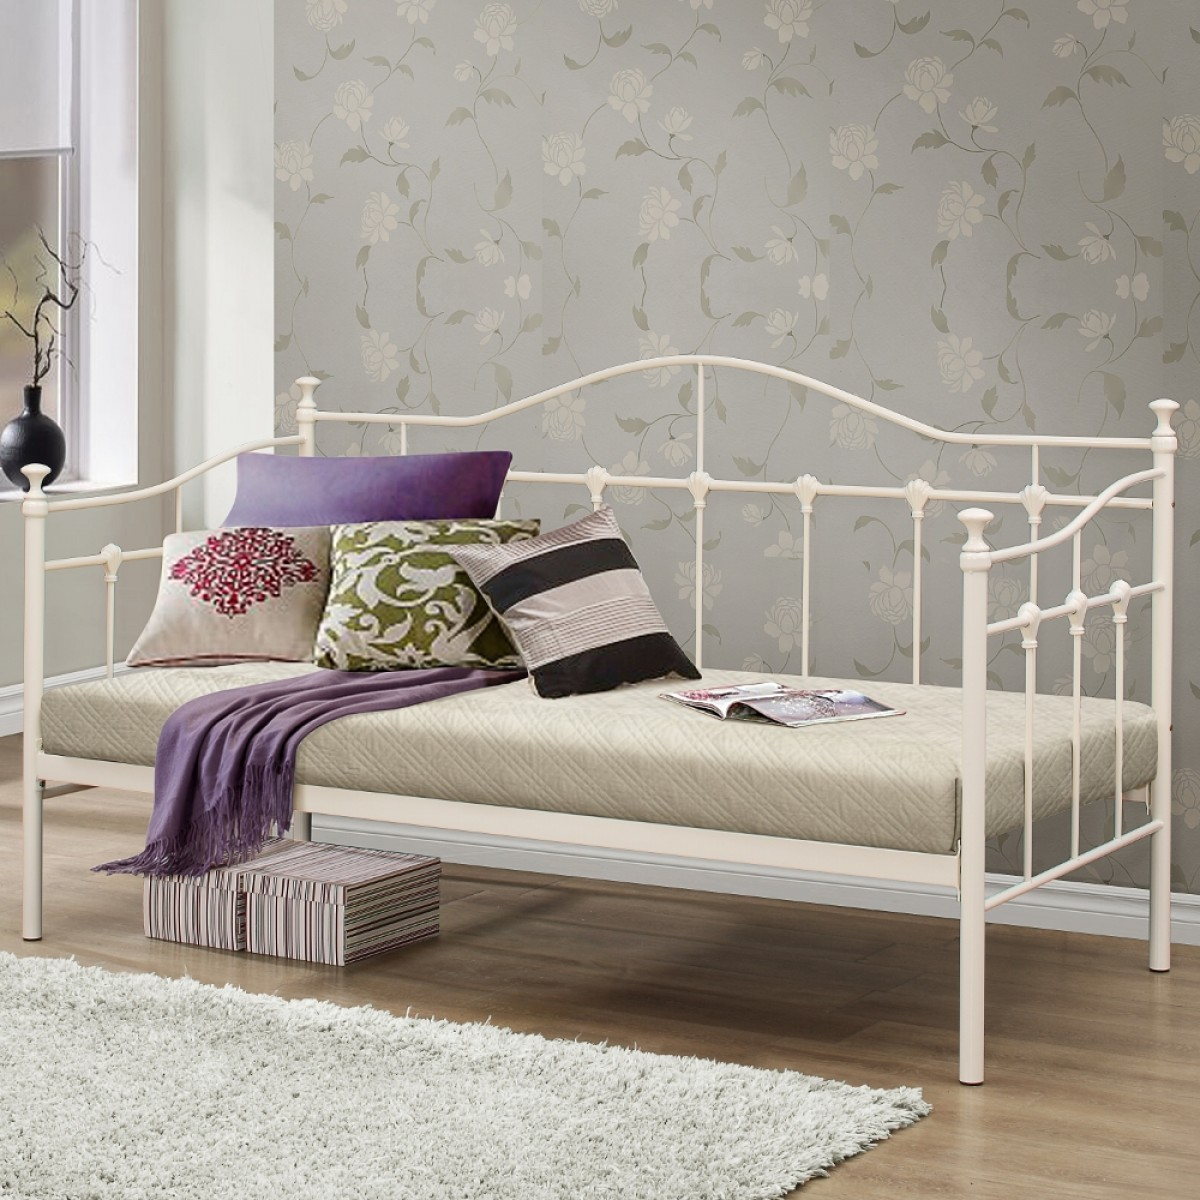 Torino Cream Metal Day Bed - 3ft Single